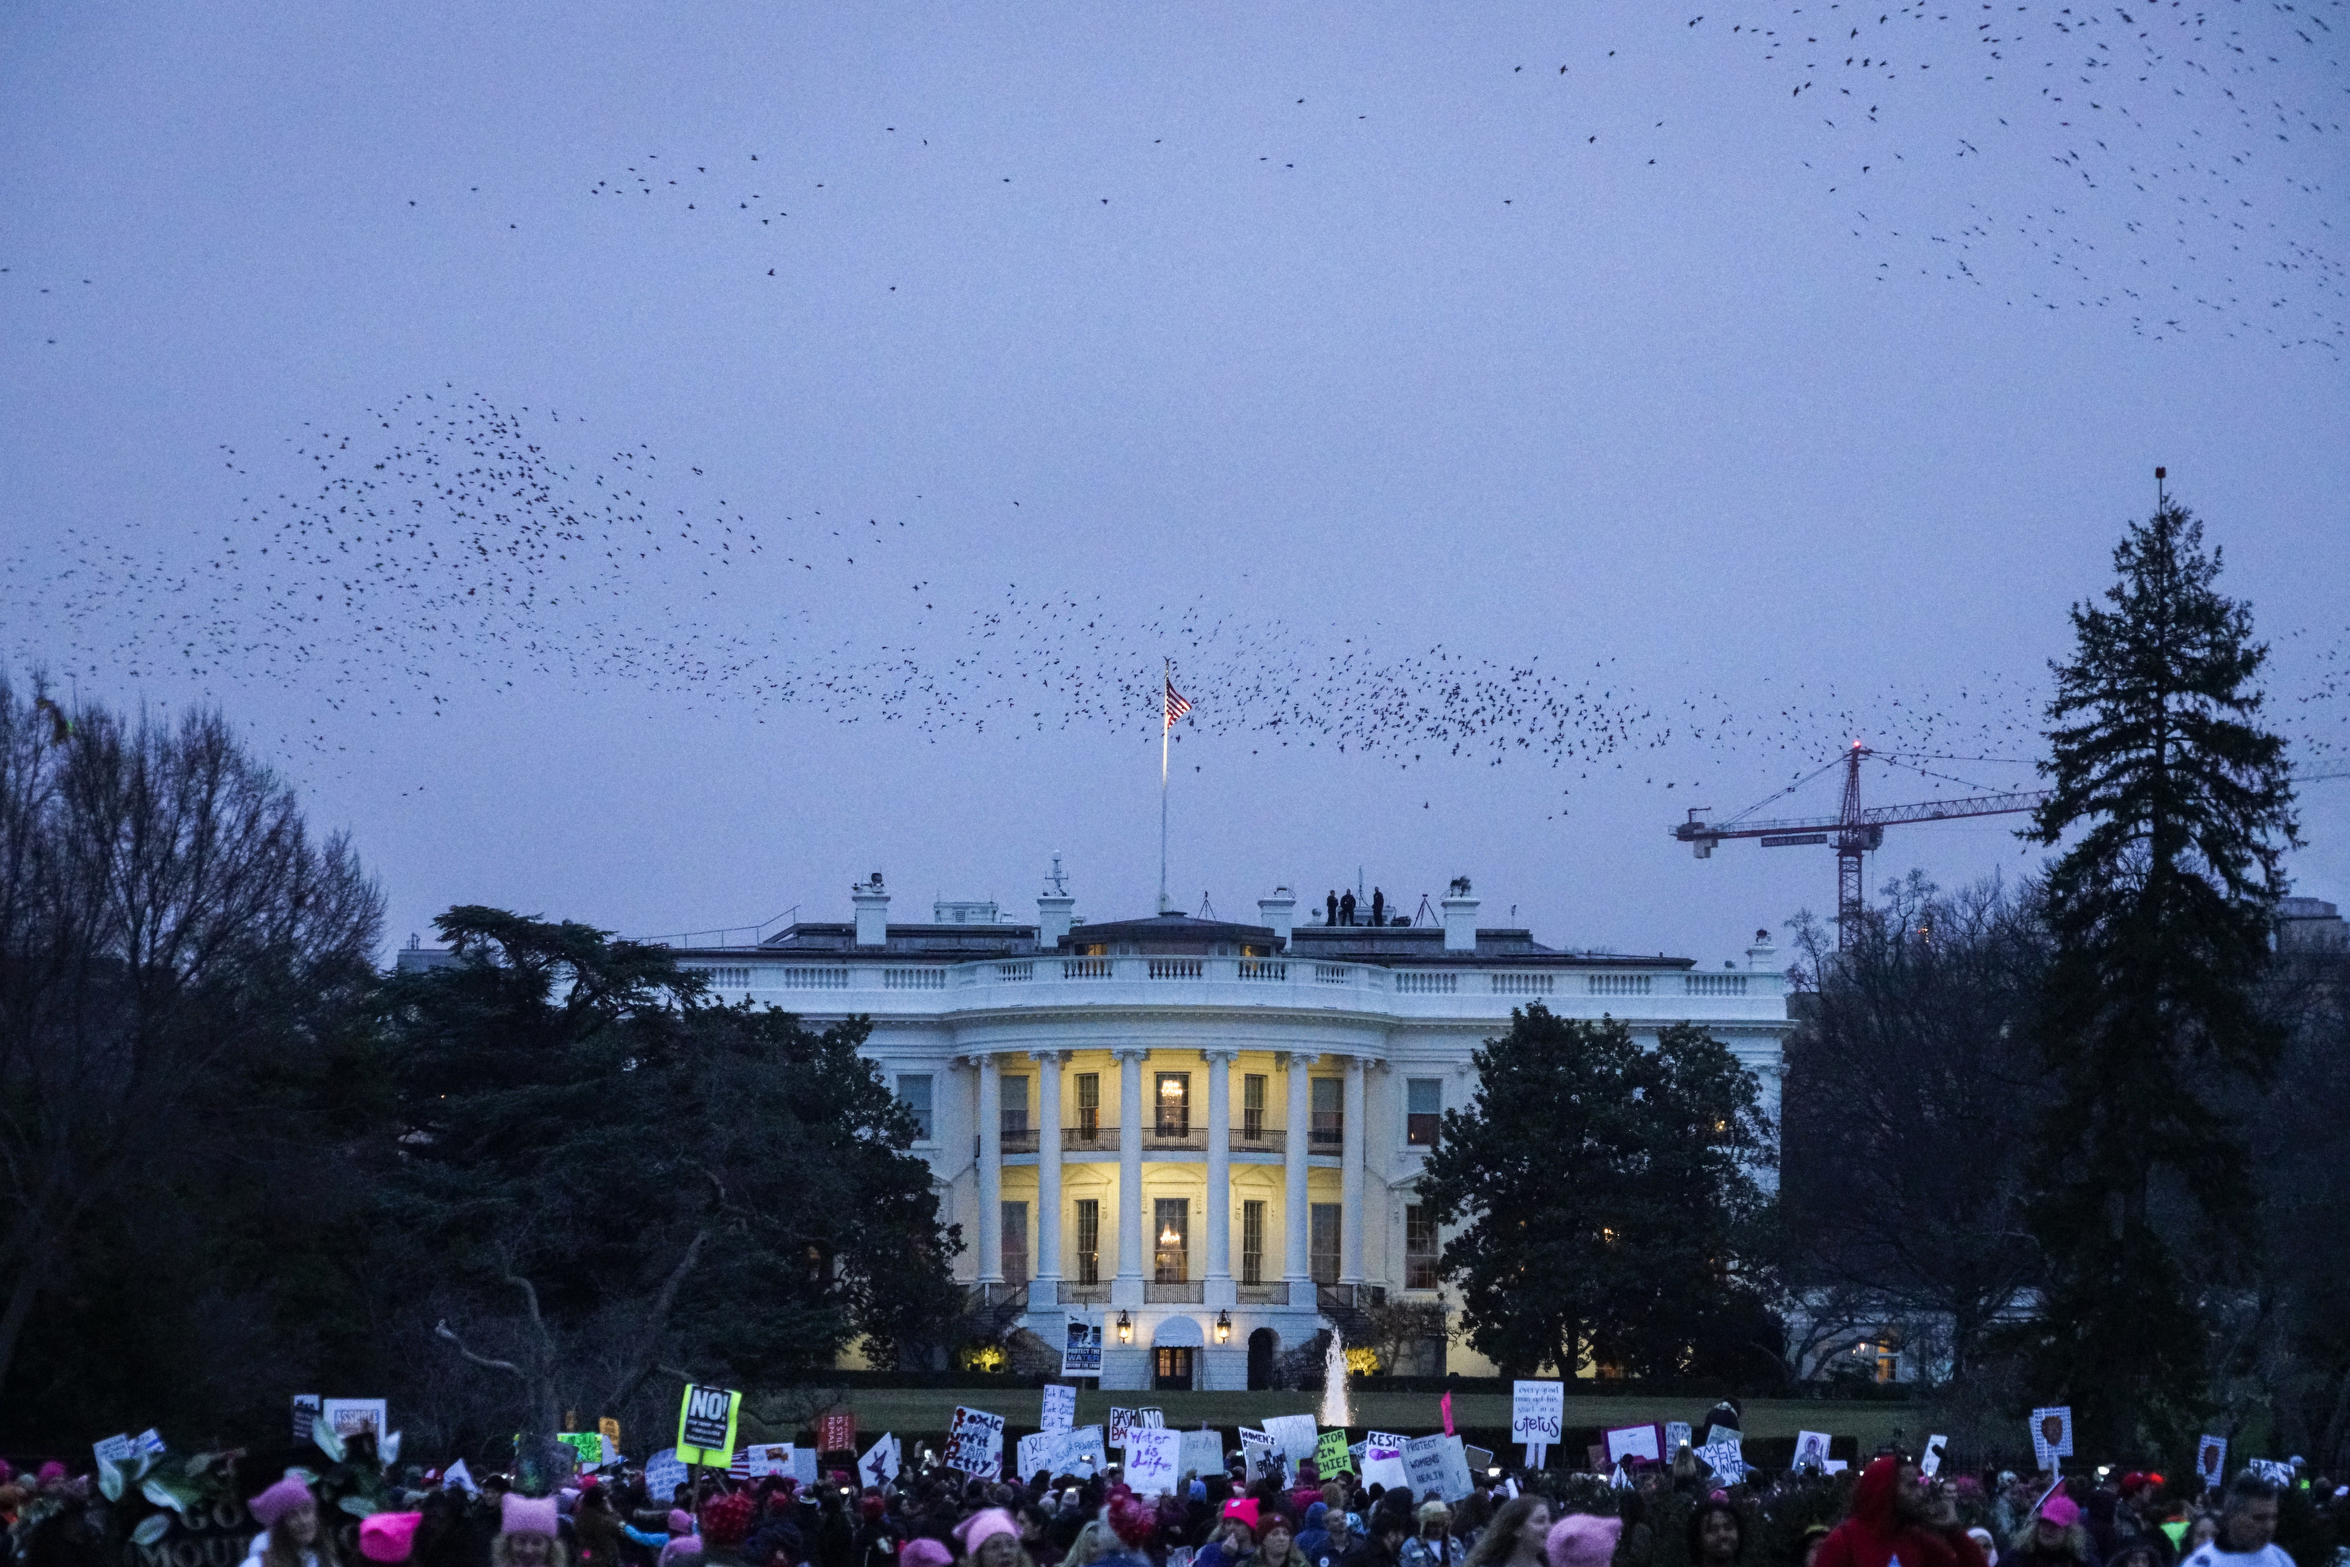 Protestors march to                                    The White House at the end of Women's March in Washington, D.C., on Friday, Jan. 21, 2017.